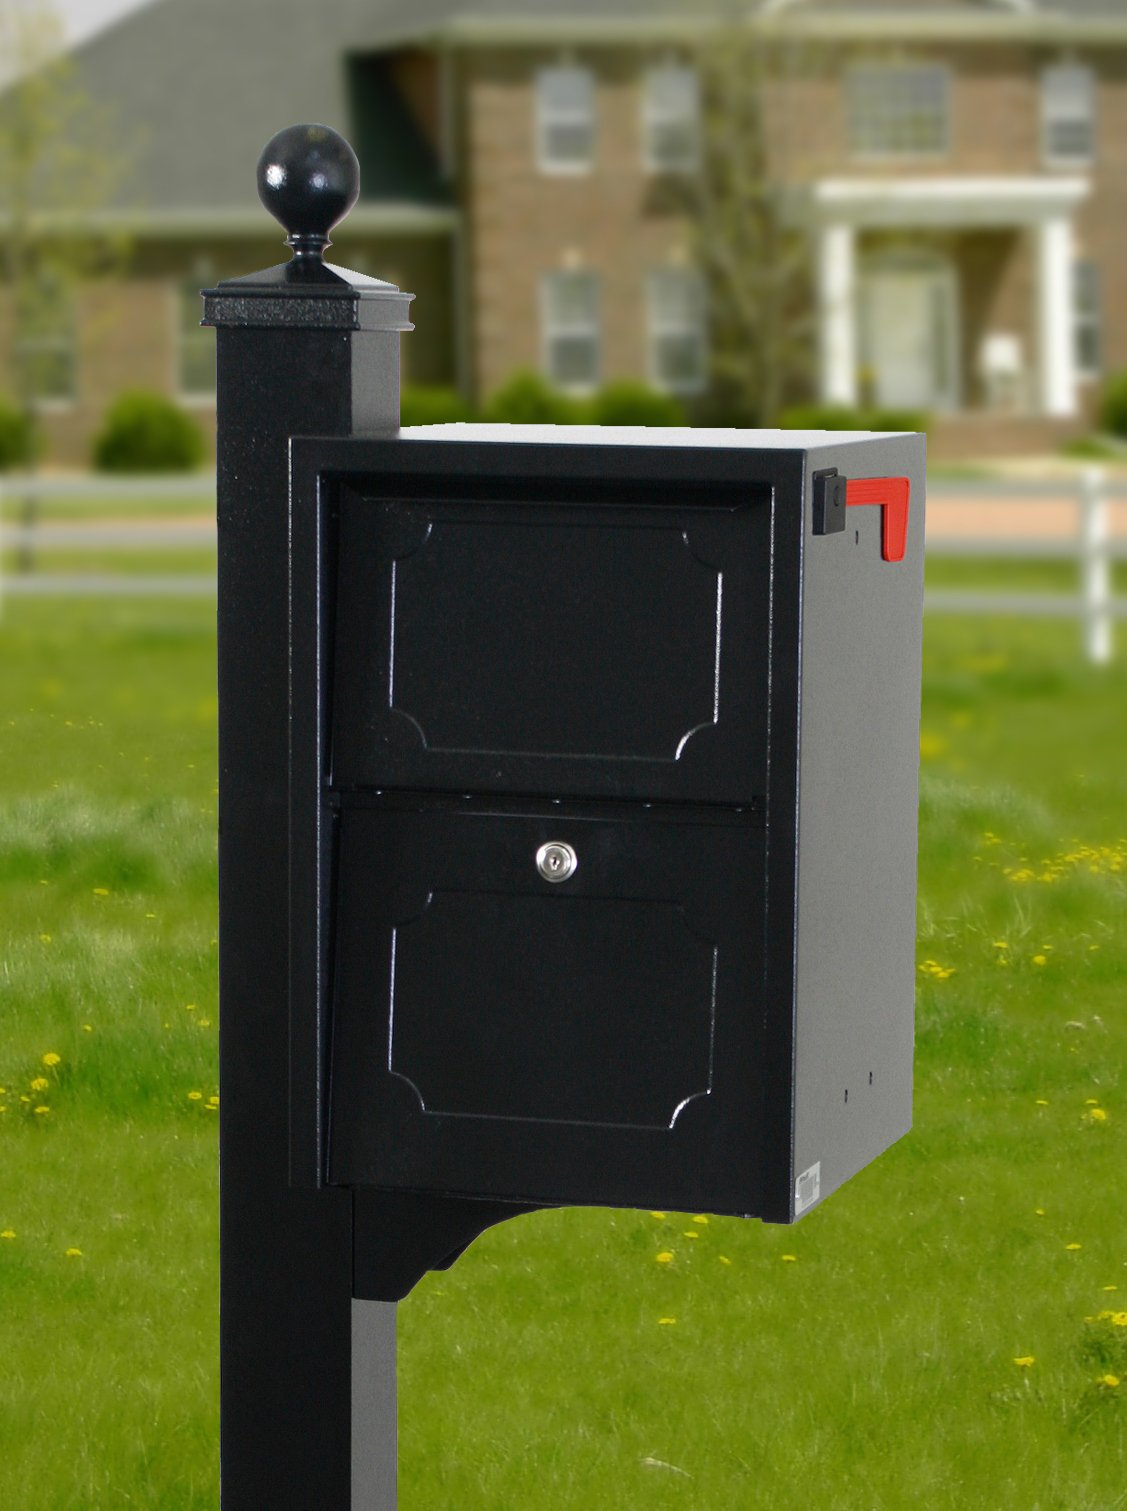 dVault® Weekend Away Vault DVJR0060 Locking Mailbox with Side Mount In Ground Post Included (Black) by dVault